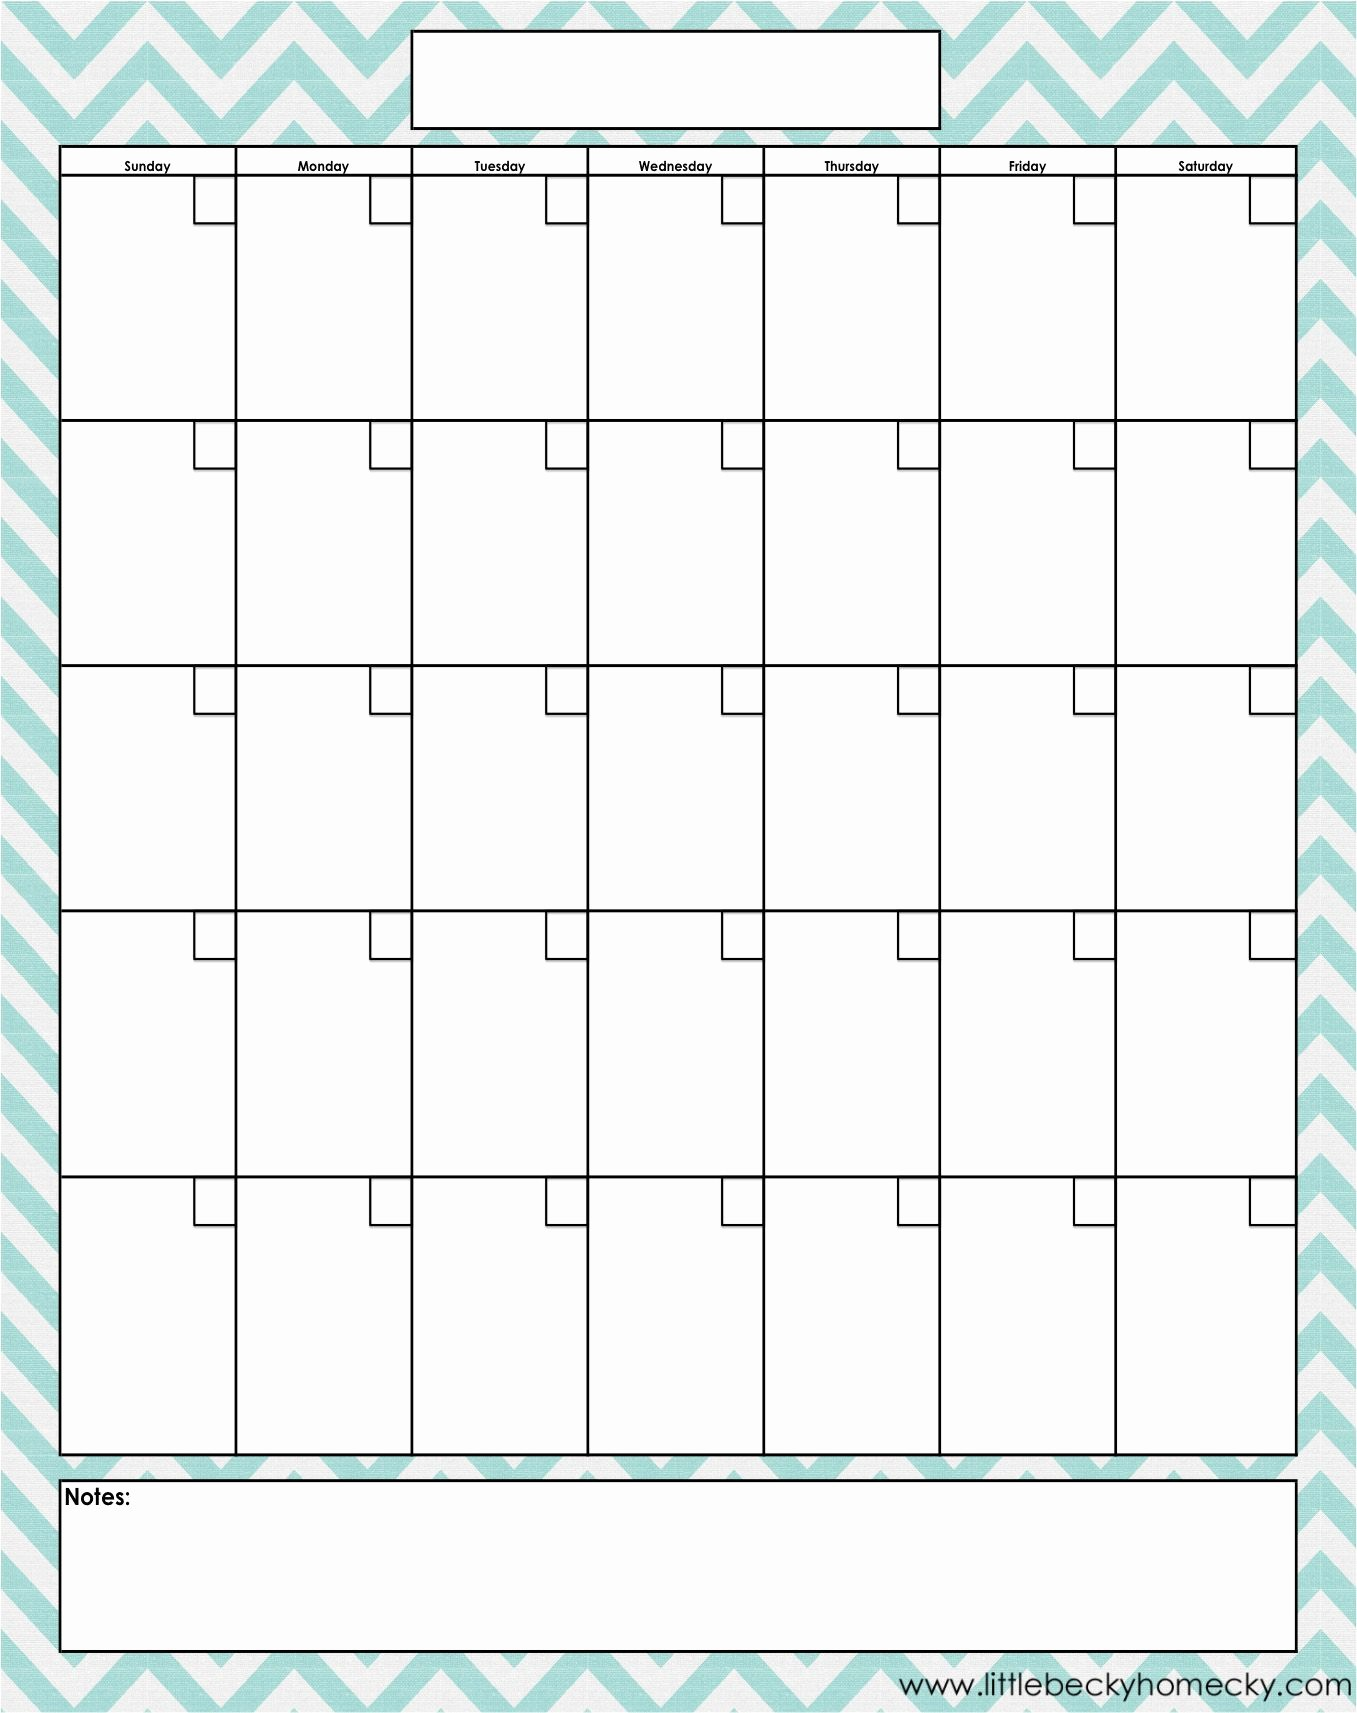 Free Printable Monthly Calendar Templates Awesome Monthly Calendar Copy Creating A Planner